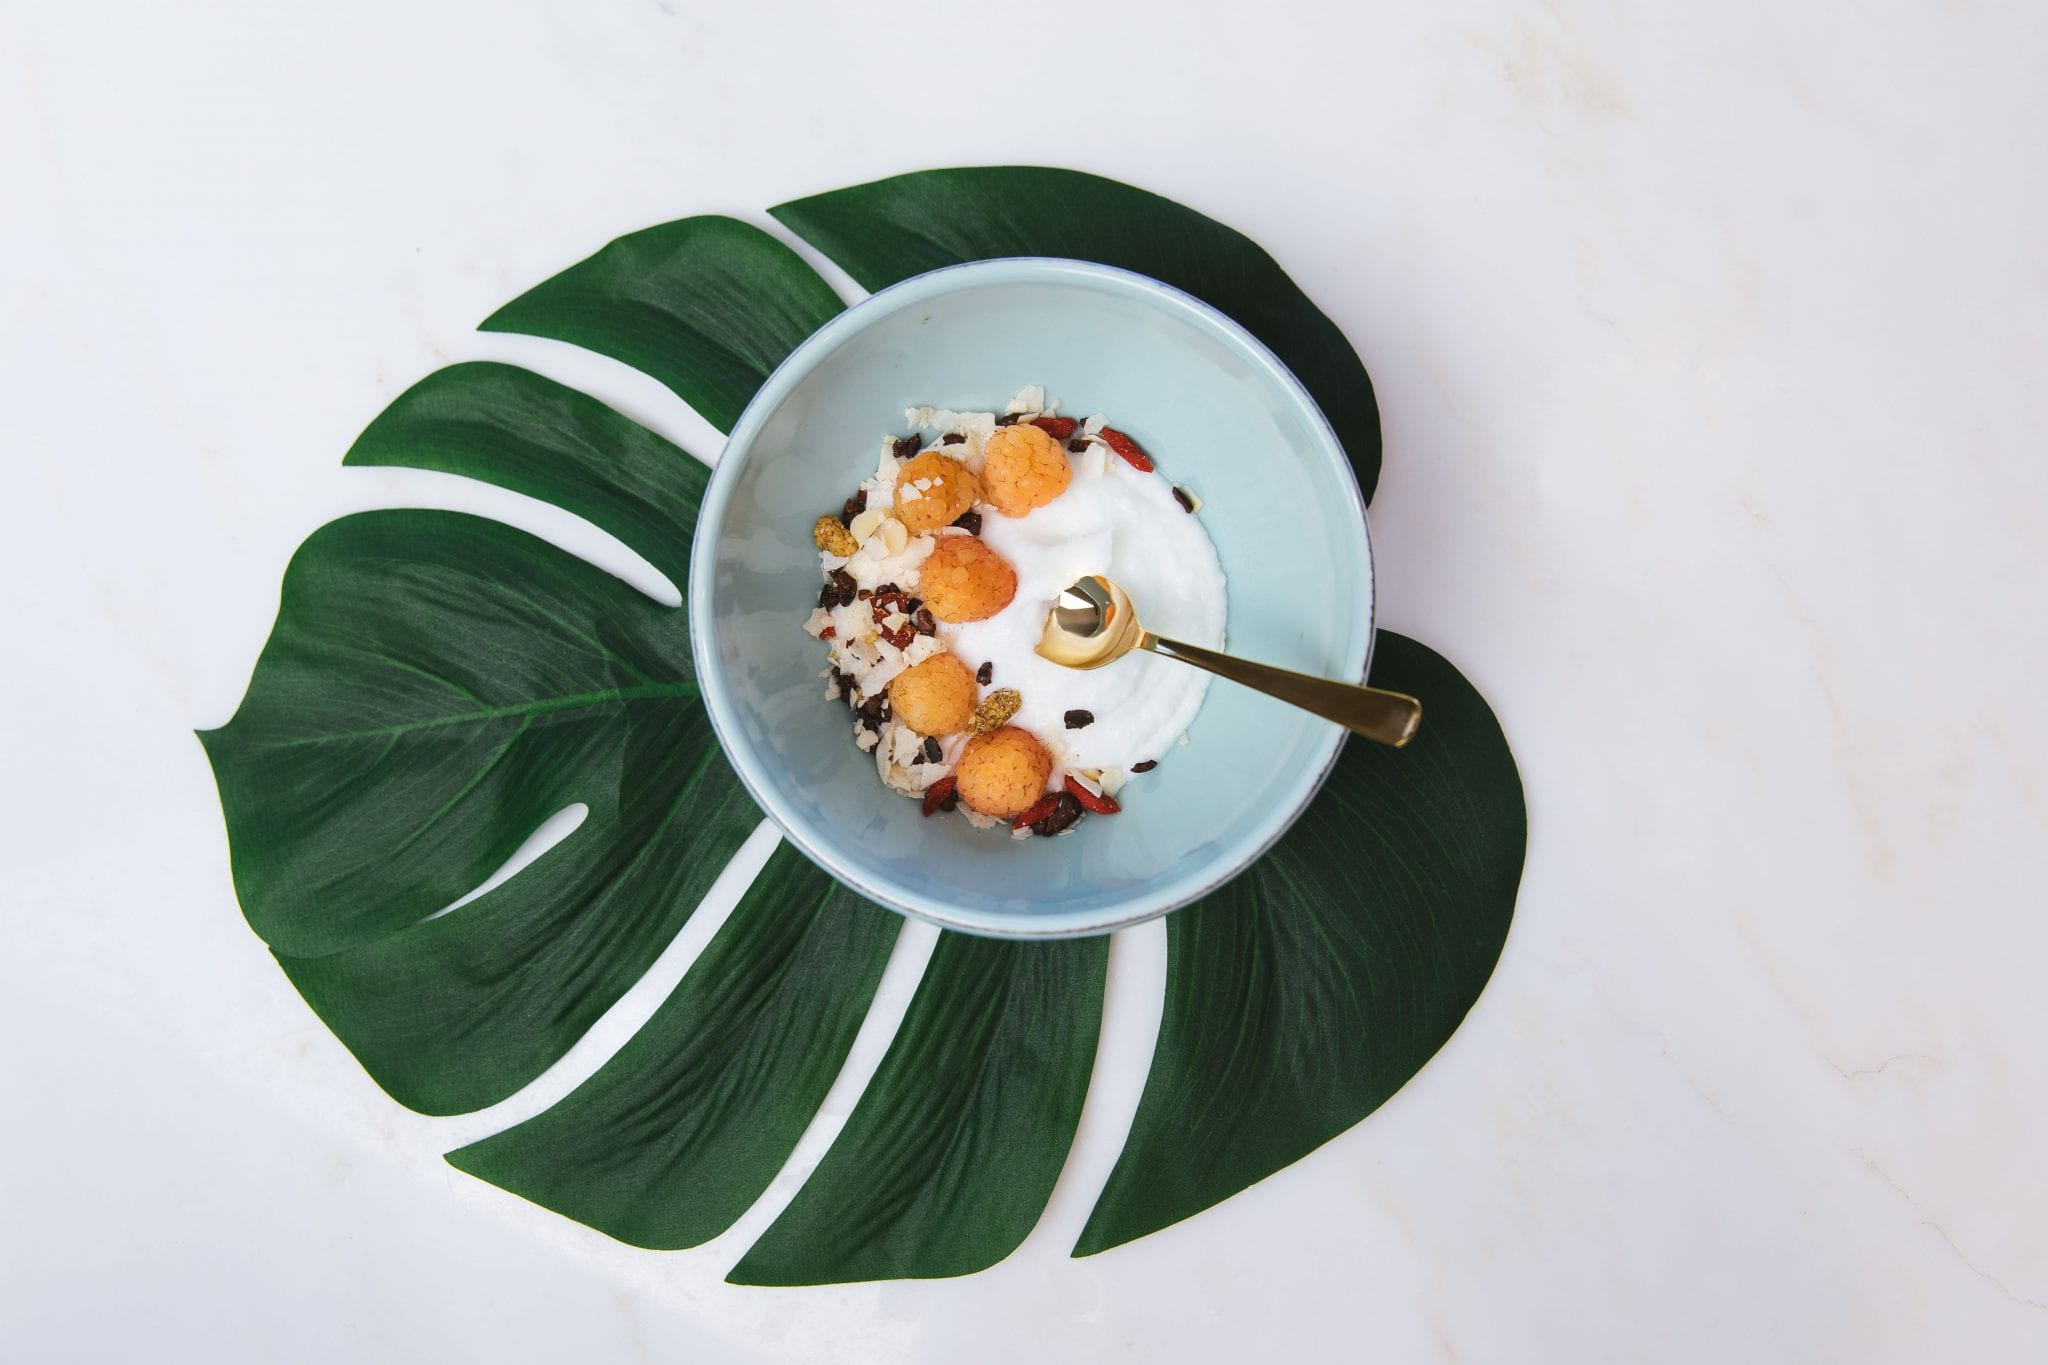 Make your own plant-based parfait to help